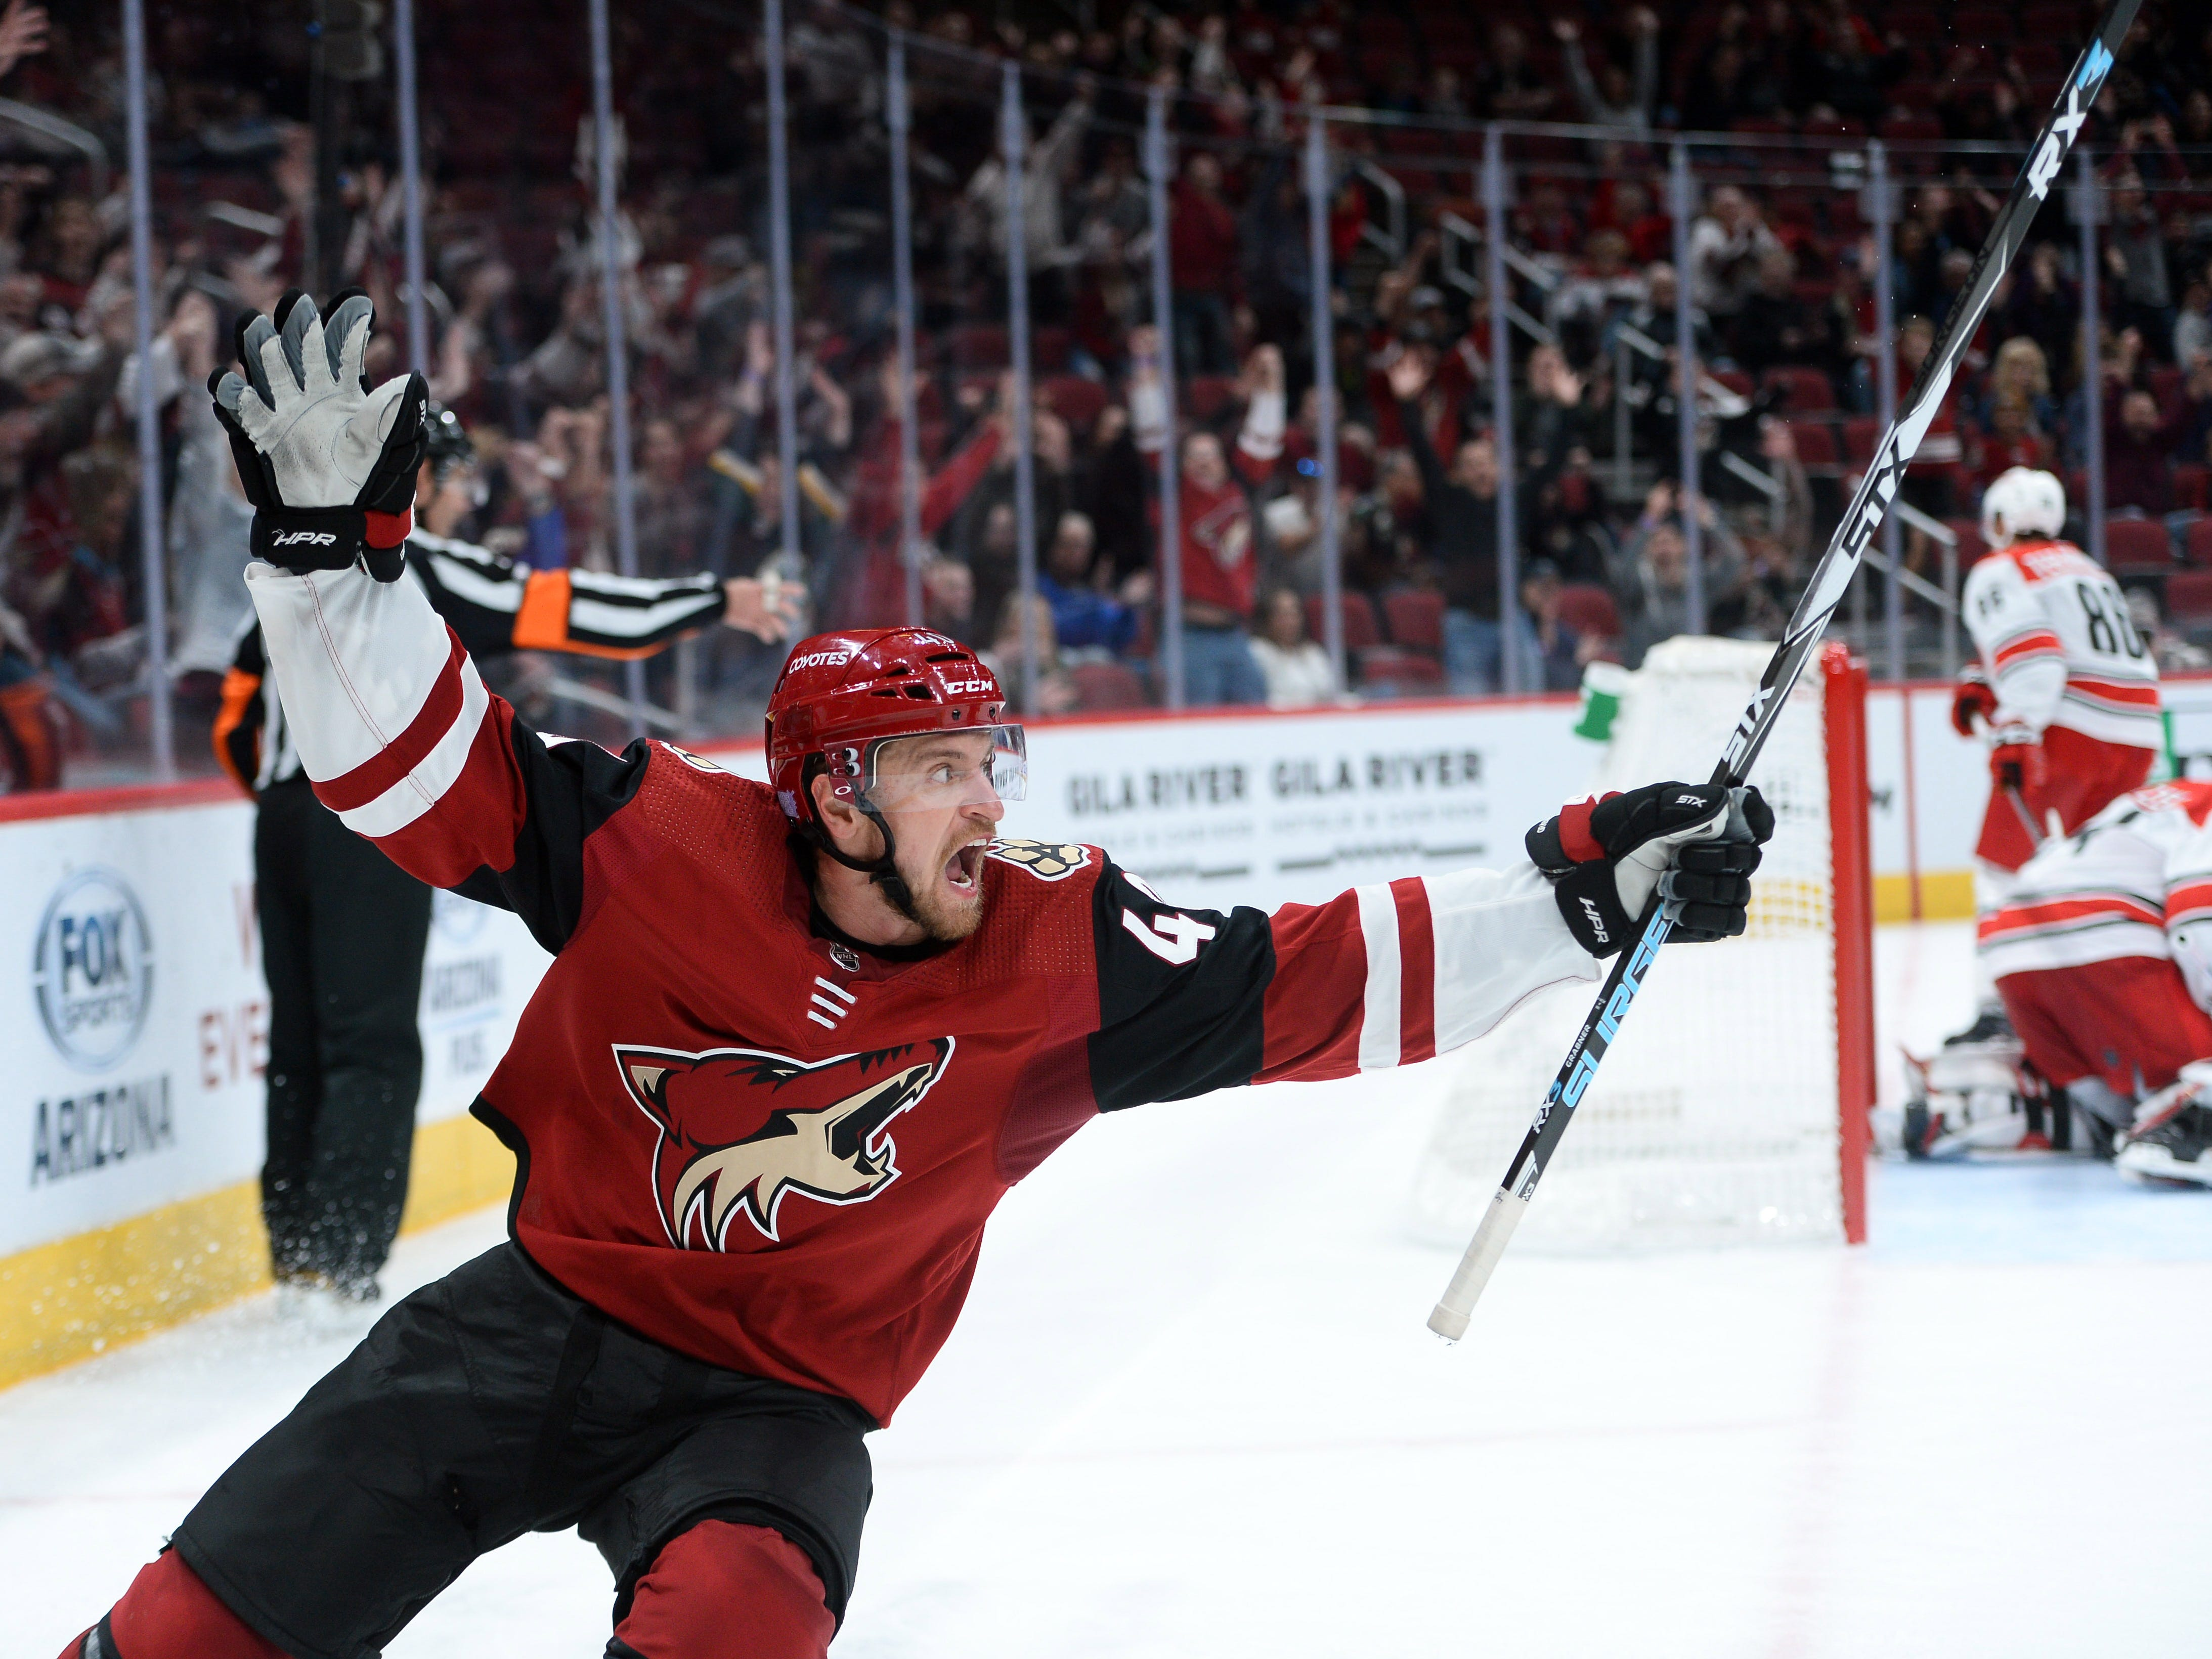 Nov. 2: Arizona Coyotes right wing Michael Grabner celebrates after scoring the game-winning goal against the Arizona Coyotes during the overtime period at Gila River Arena. The Coyotes won the game, 4-3.